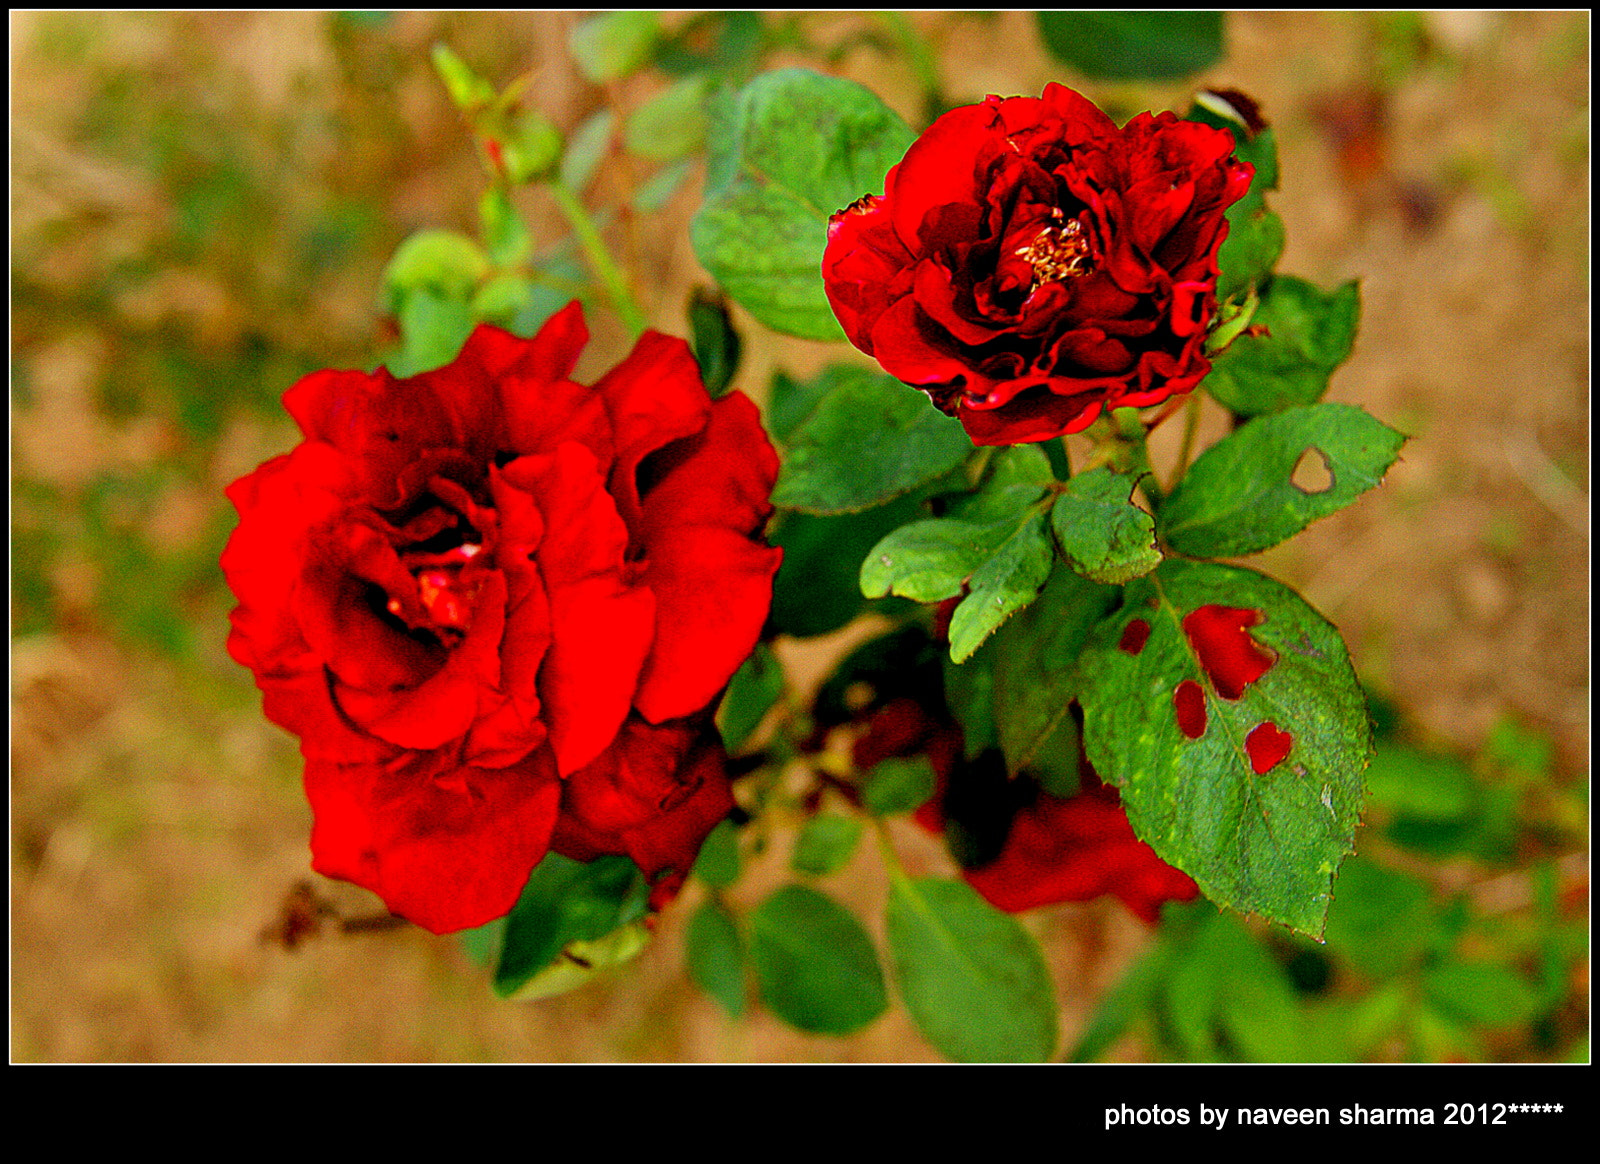 Photograph flowers my life by naveen sharma on 500px